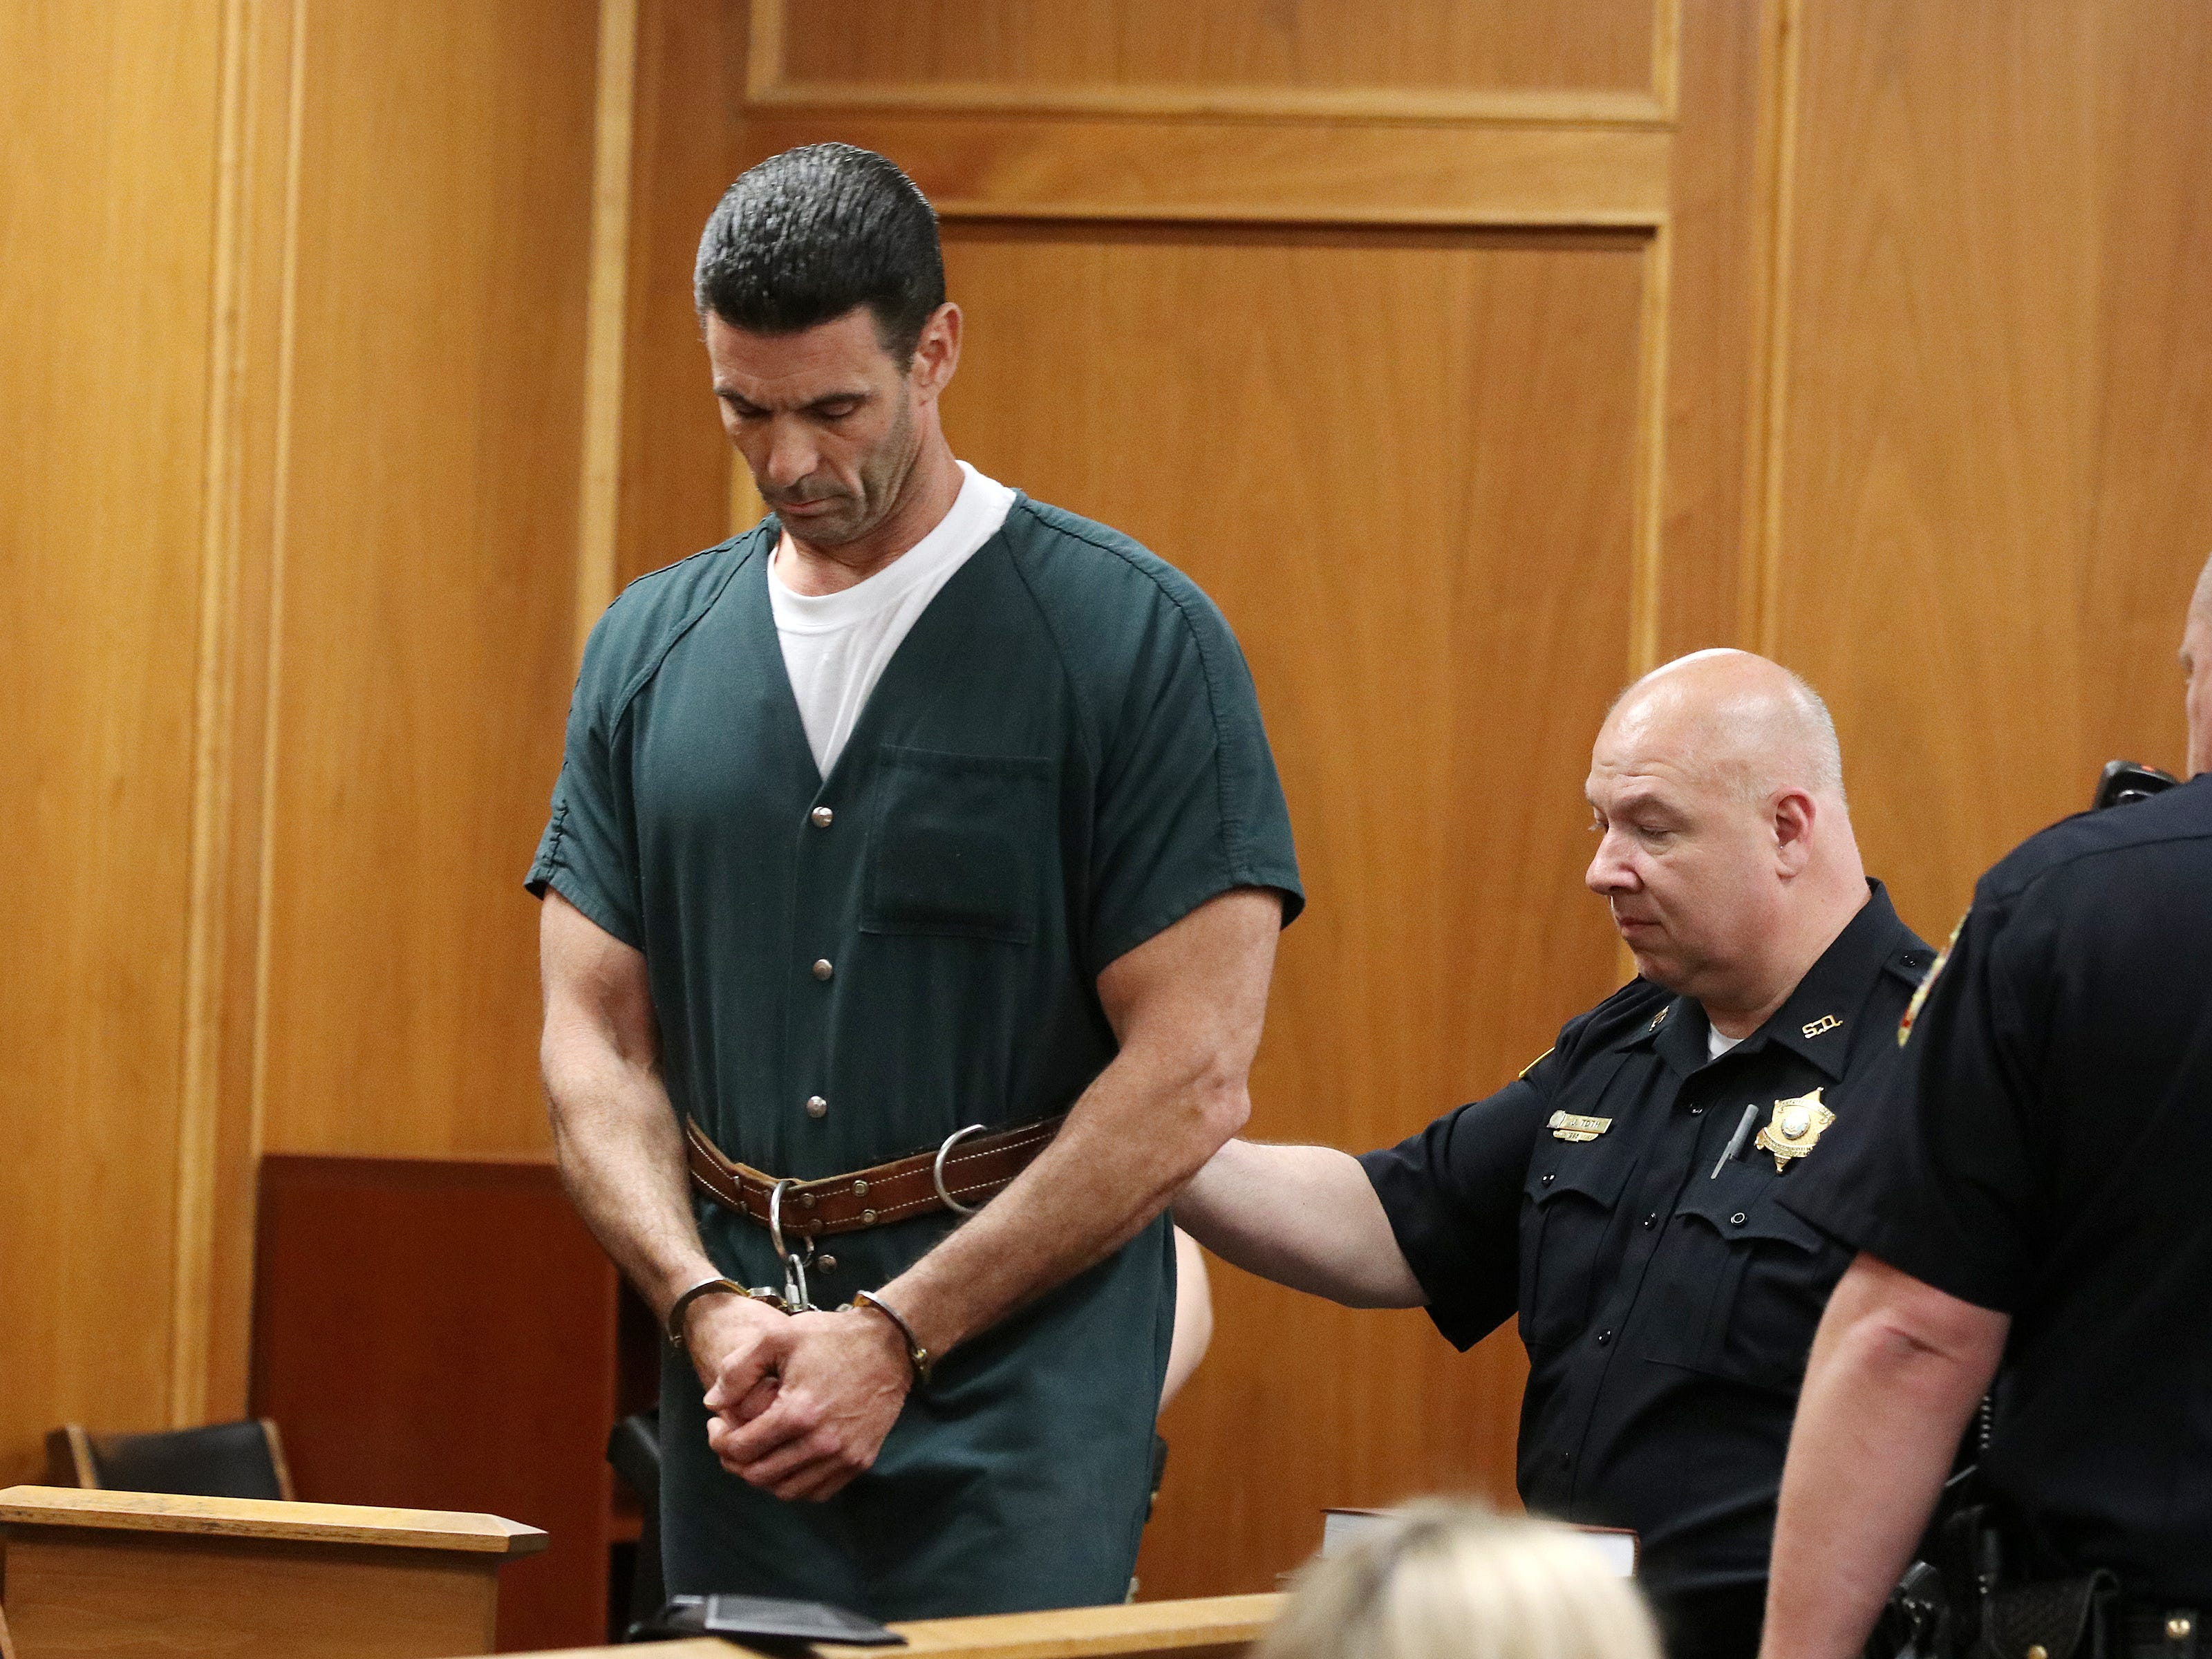 """James Mainello, who is charged in the home-invasion robbery of former """"Real Housewives of New Jersey'' star Dina Manzo and her then-fiance at their Holmdel townhome, appears for his detention hearing before Judge James McGann at the Monmouth County Courthouse in Freehold, NJ Tuesday May 14, 2019."""